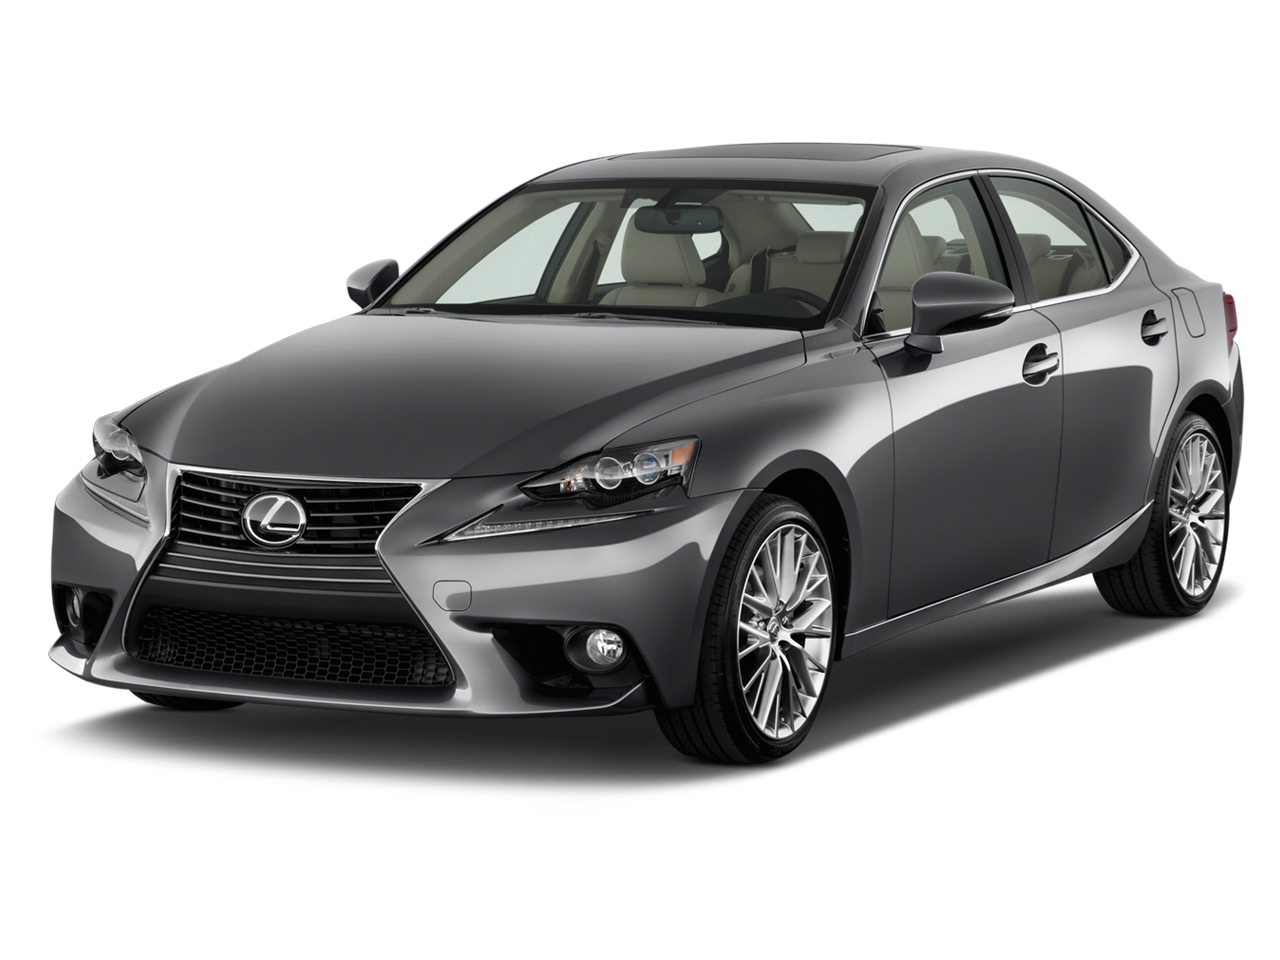 2015 lexus is 250 review ratings specs prices and photos the car connection. Black Bedroom Furniture Sets. Home Design Ideas